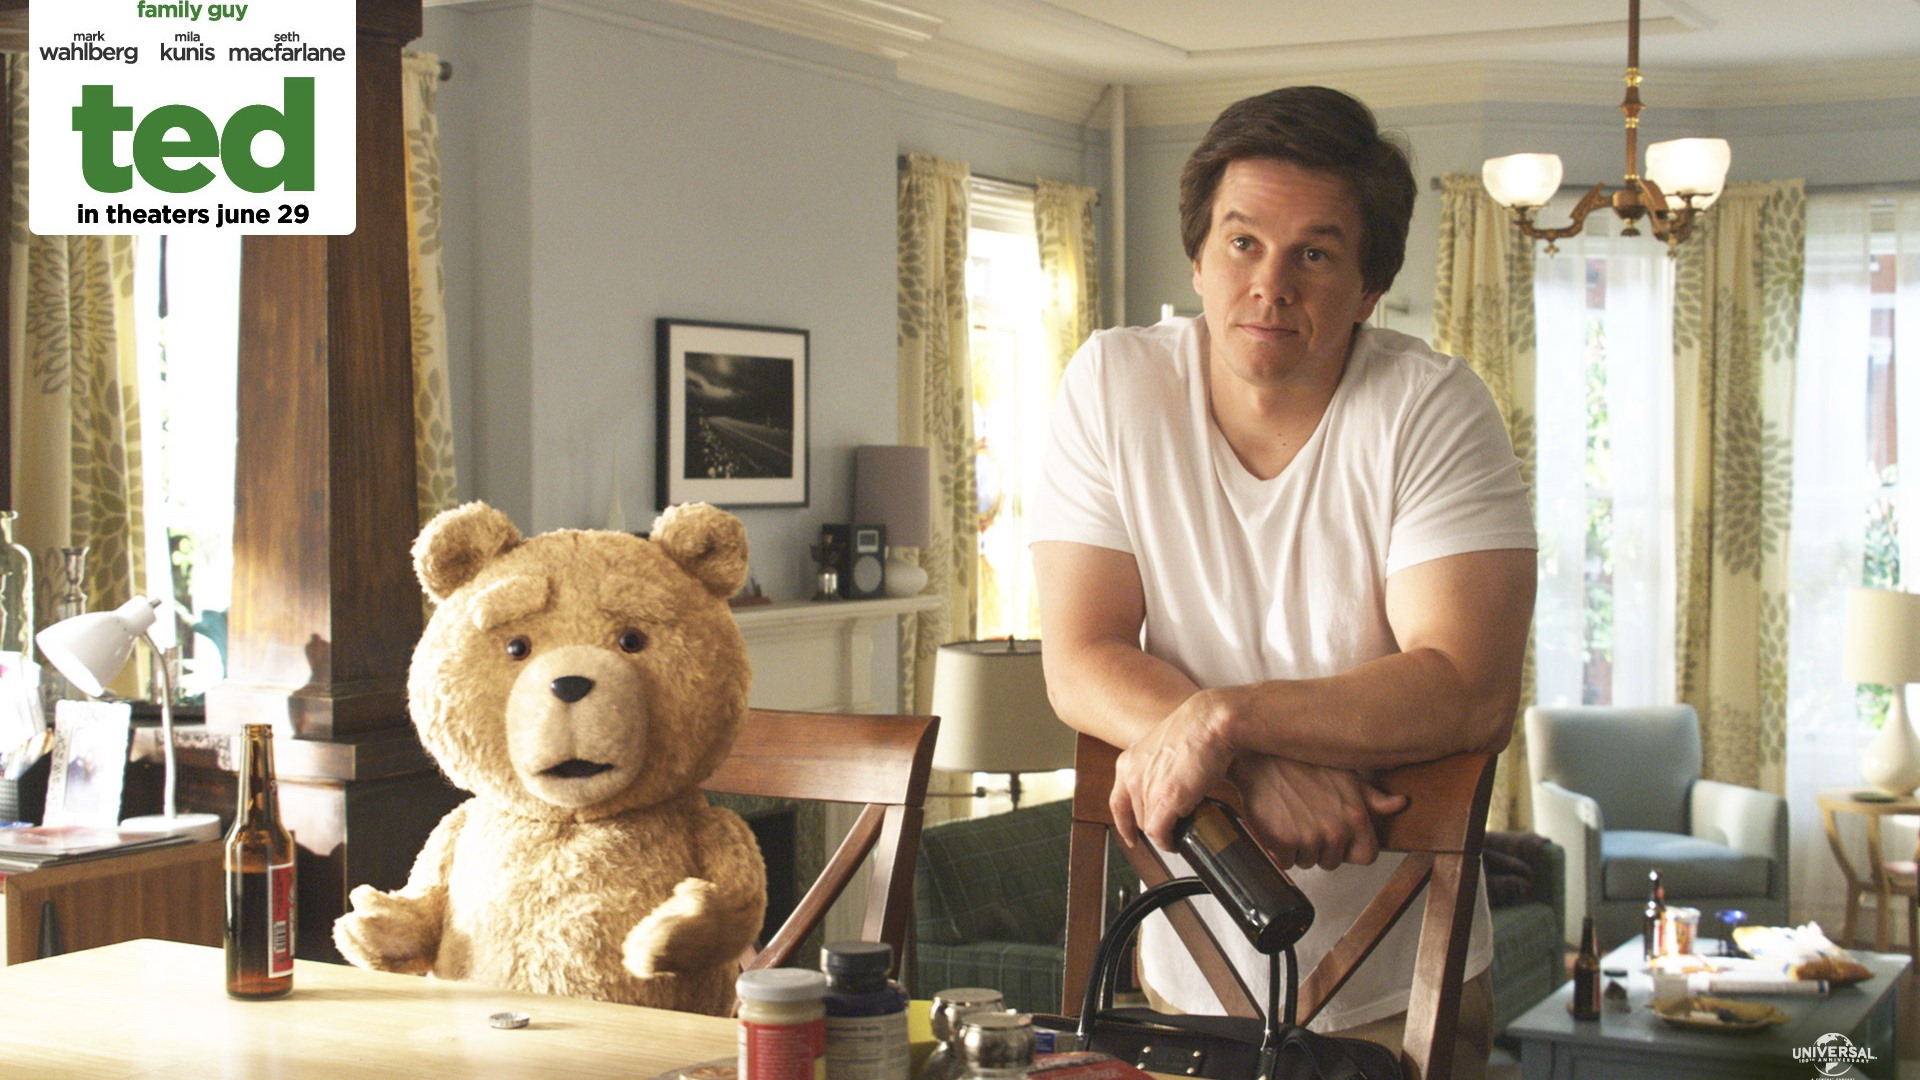 ted 2012 hd movie wallpapers #3 - 1920x1080 wallpaper download - ted